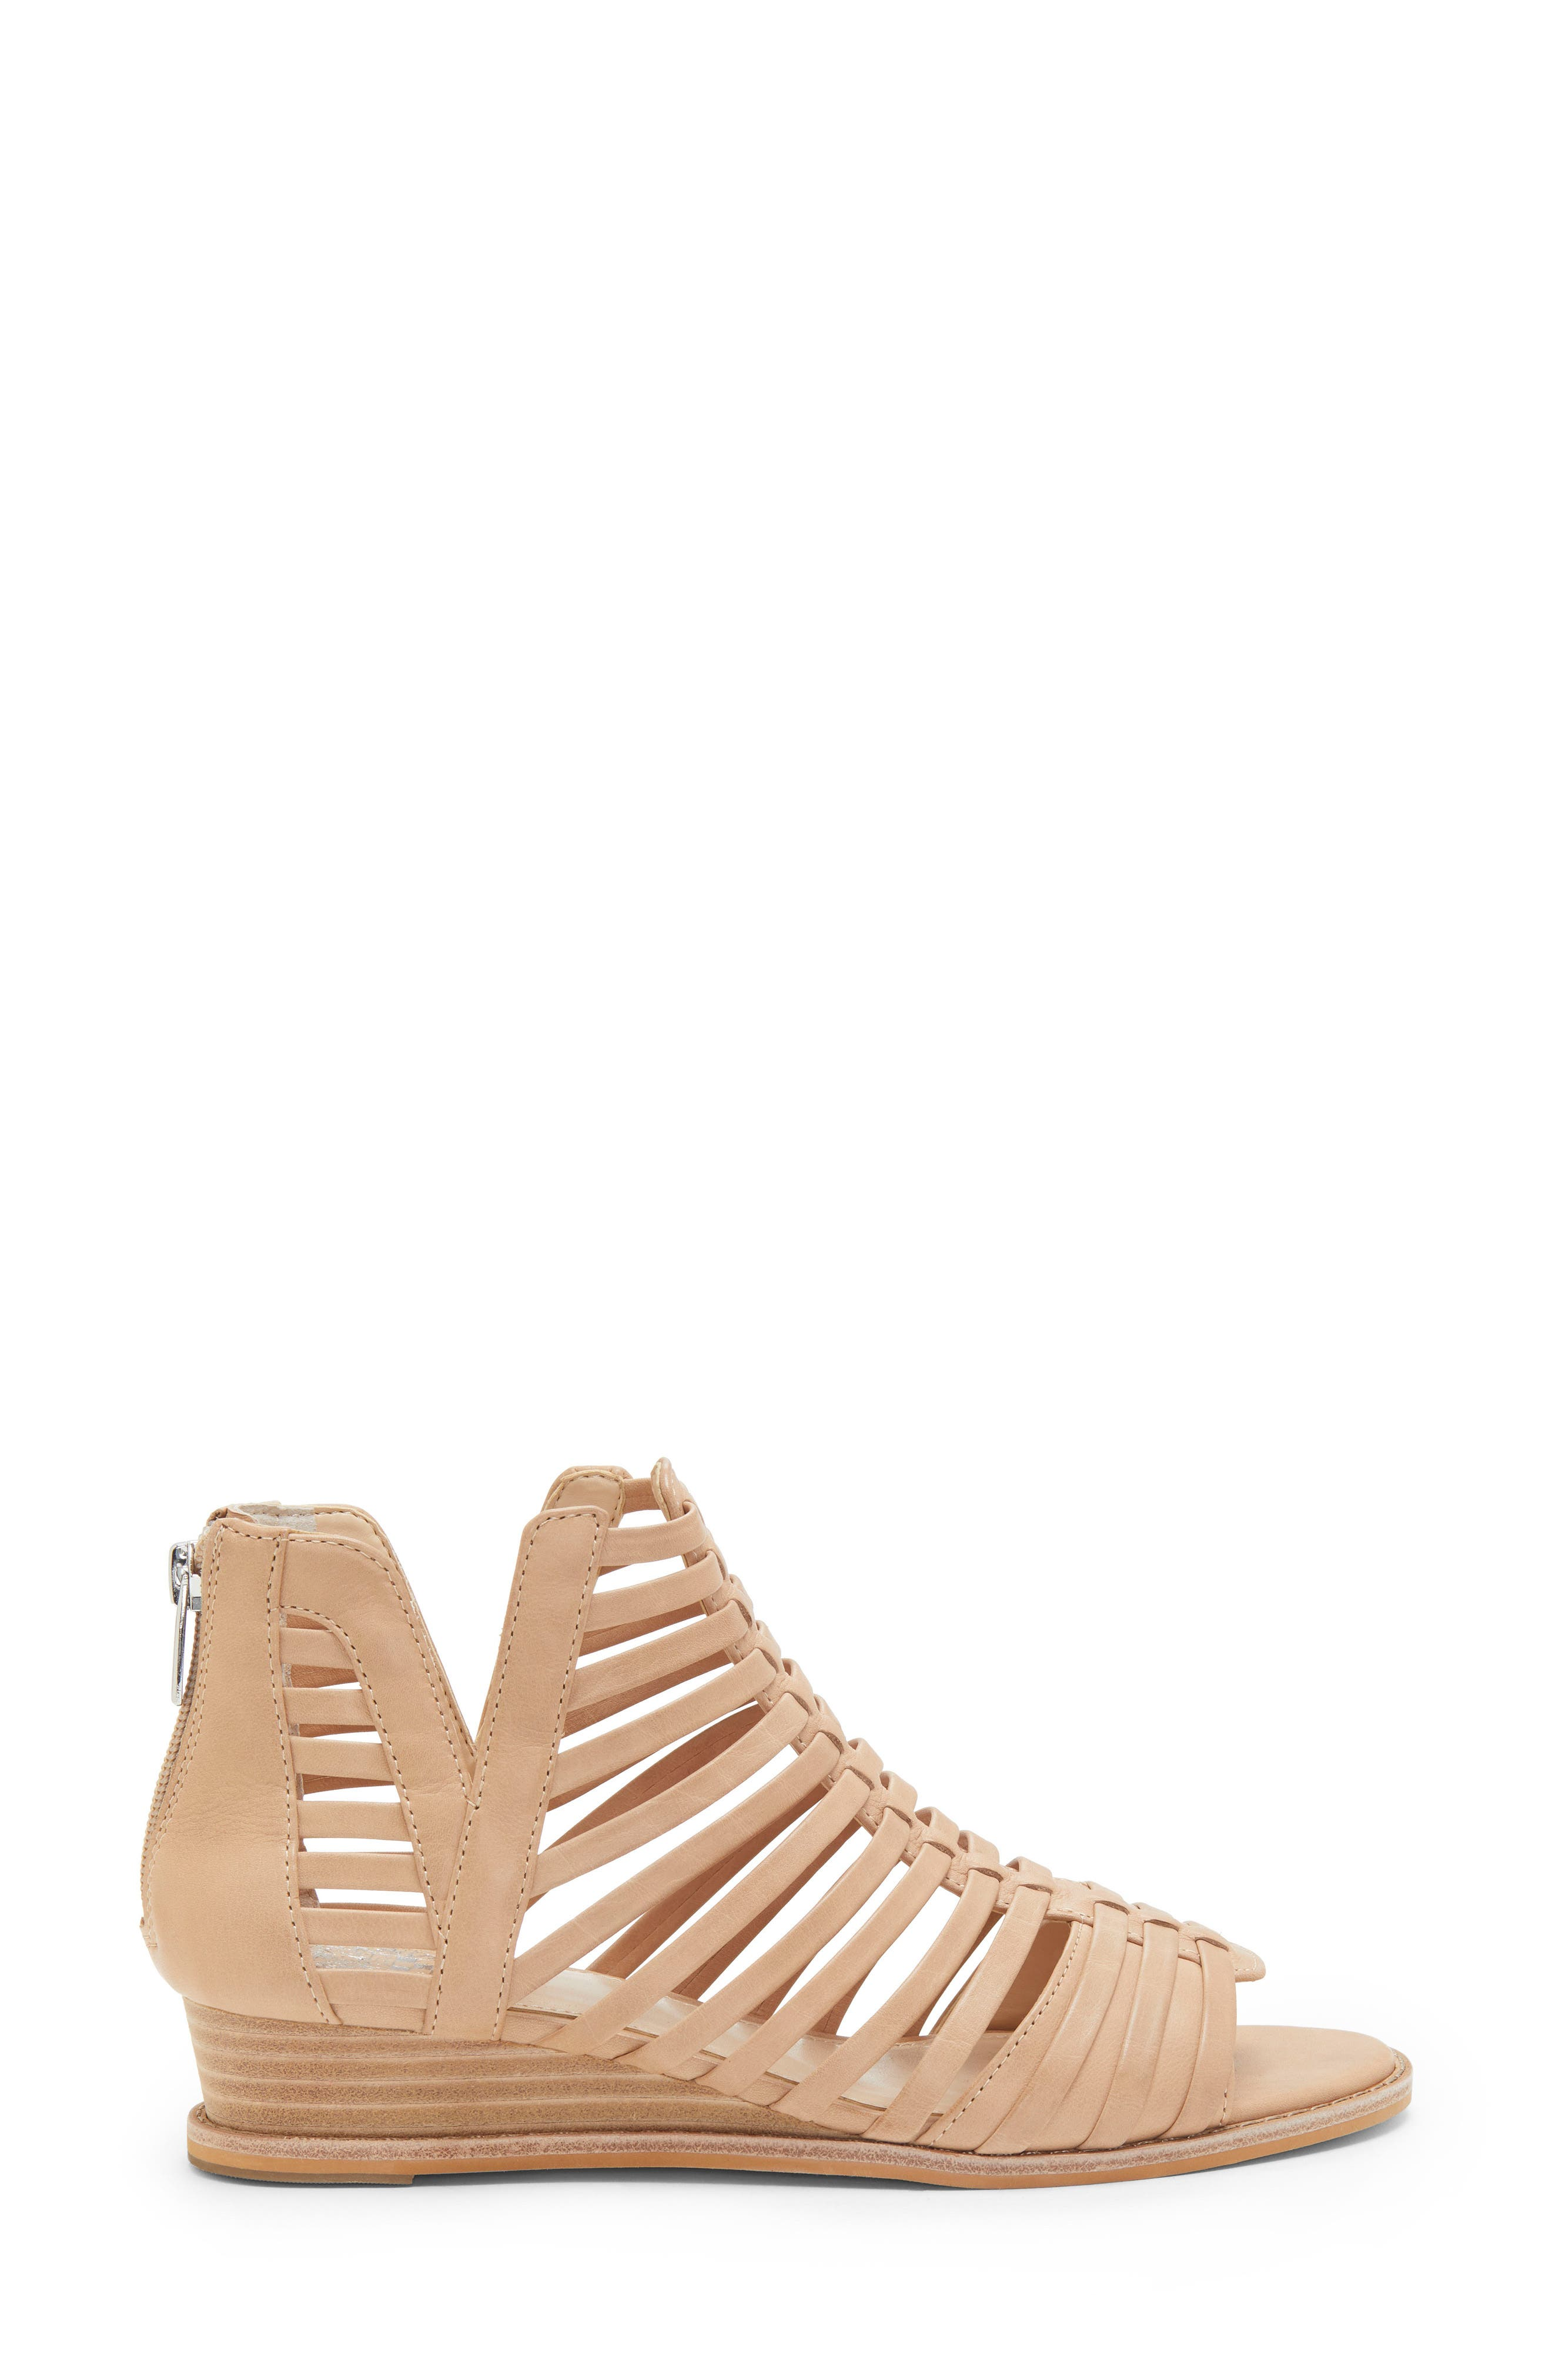 VINCE CAMUTO, Revey Wedge Sandal, Alternate thumbnail 3, color, NATURAL LEATHER